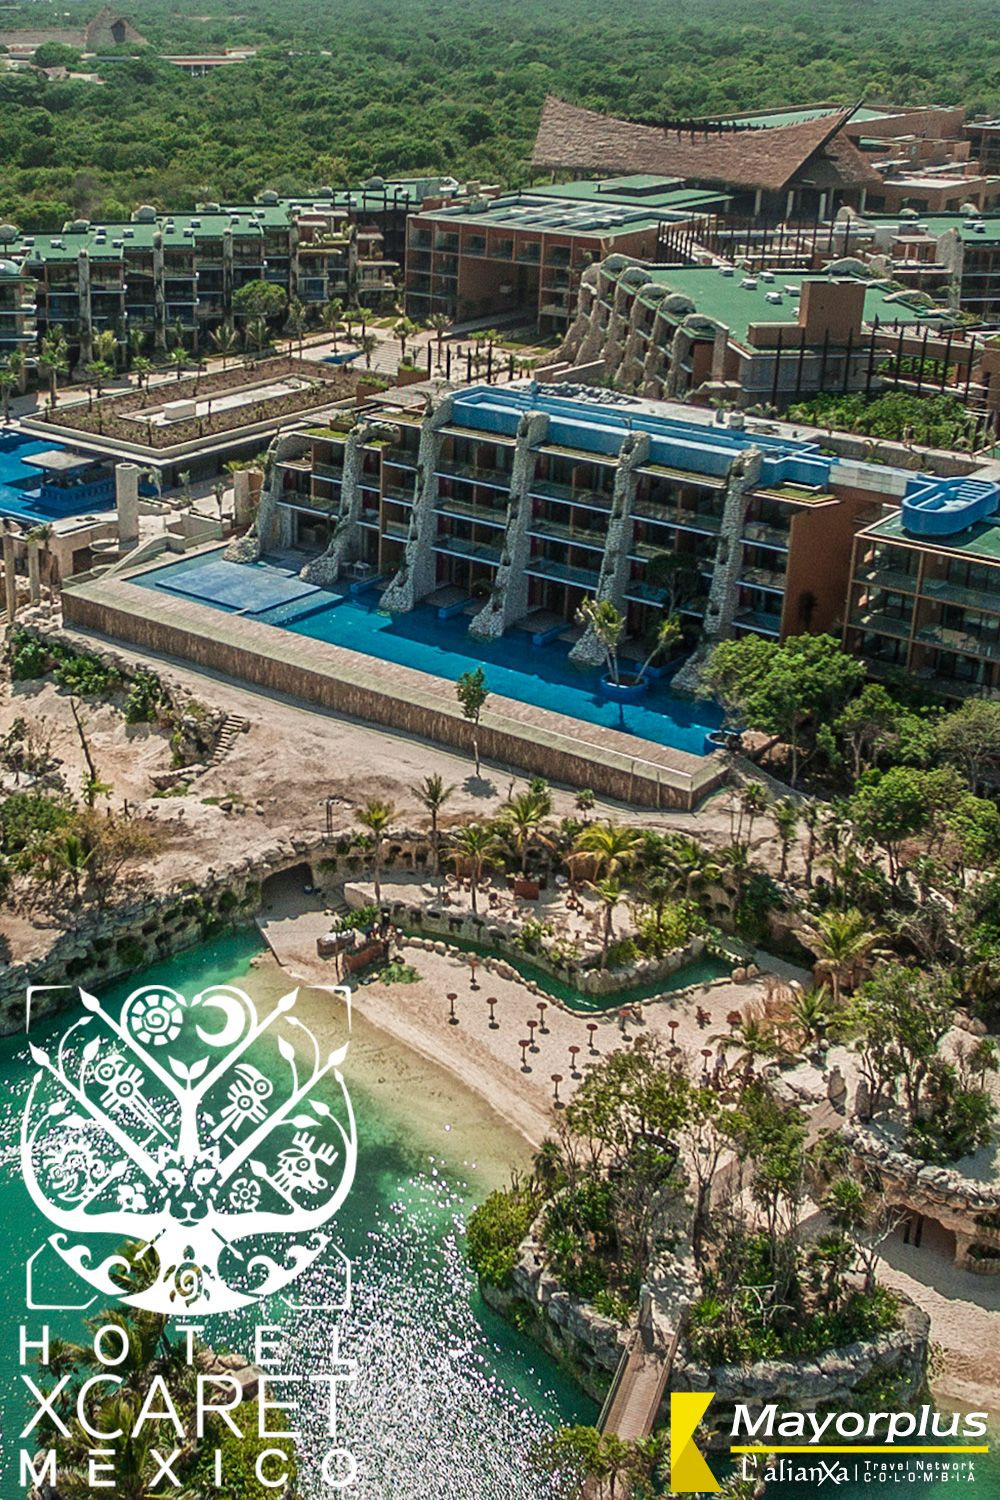 Hotel Xcaret Mexico Toda La Diversion Incluida En Cancun In 2020